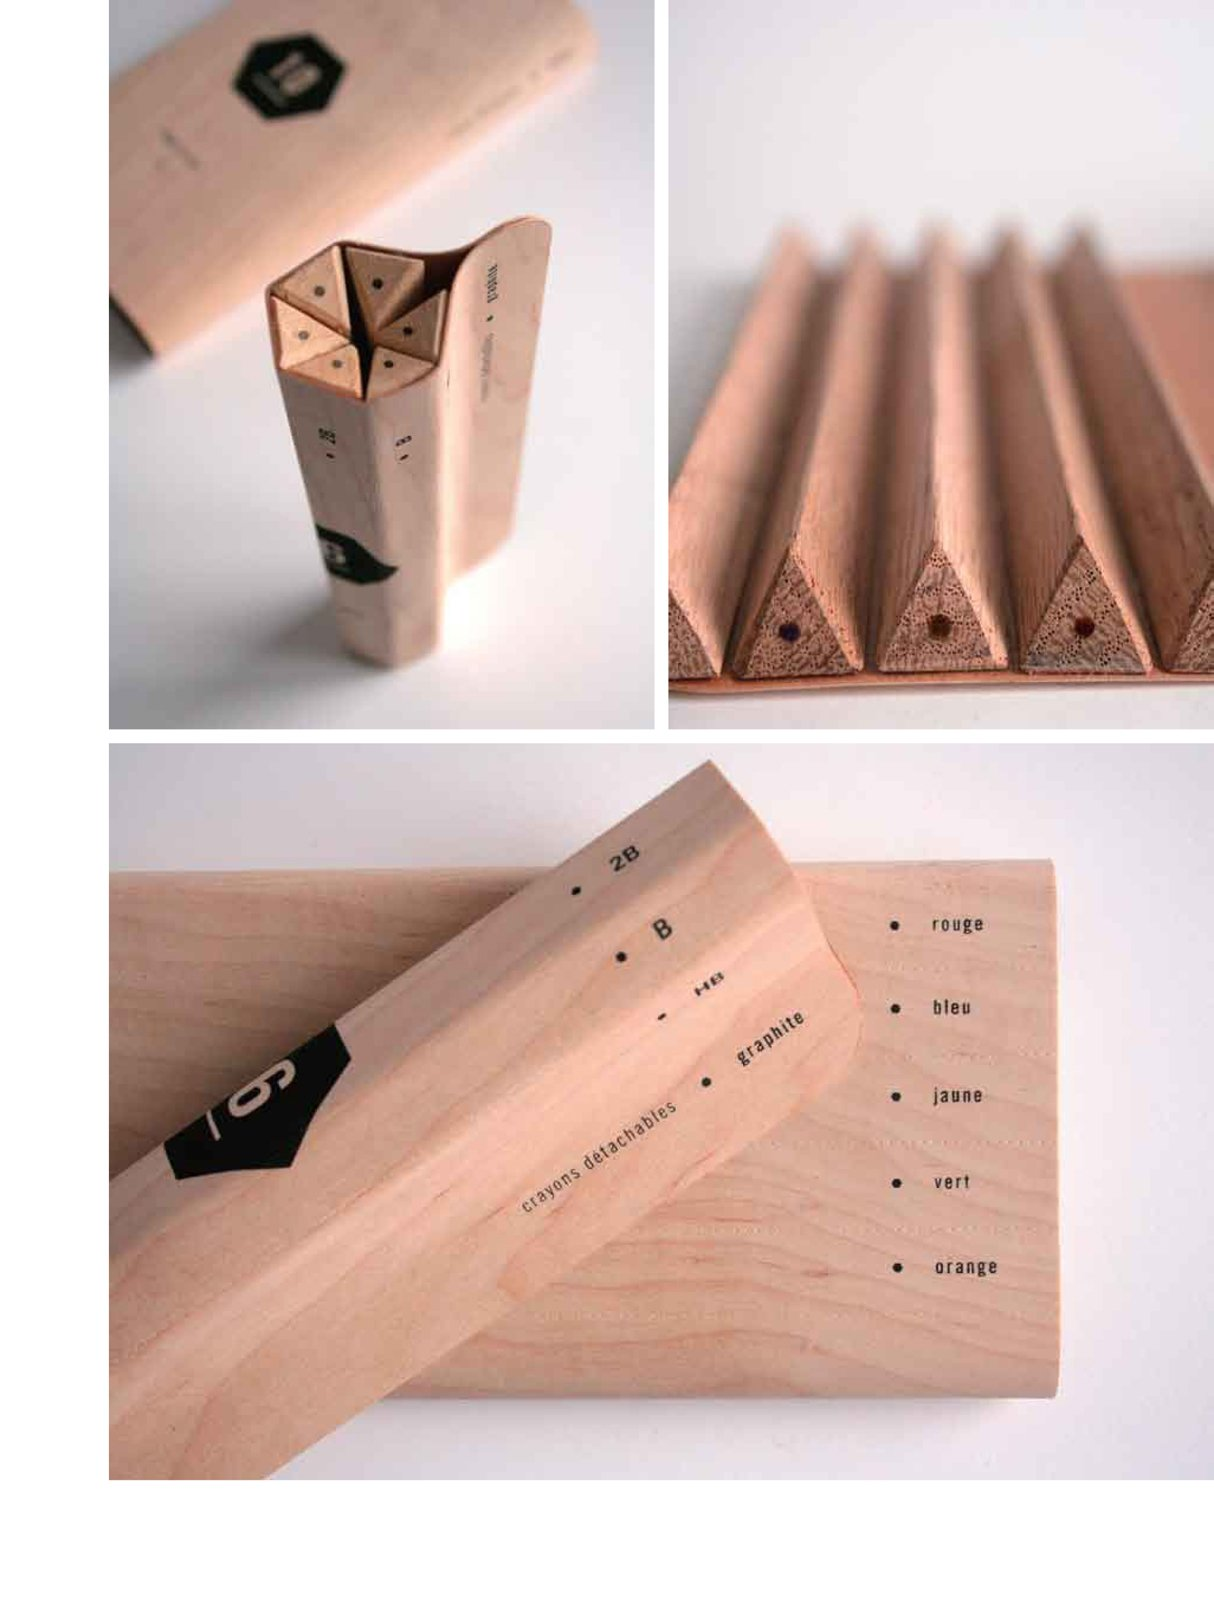 Maude Bussières's pencil packaging concept keeps extra materials to a minimum. The triangular pencils fold together in tight formation to be displayed in stores as is and then tear apart along the perforations when you're ready to use one.  Love Earth: Eco Ideas and Designs by Miyoko Ohtake